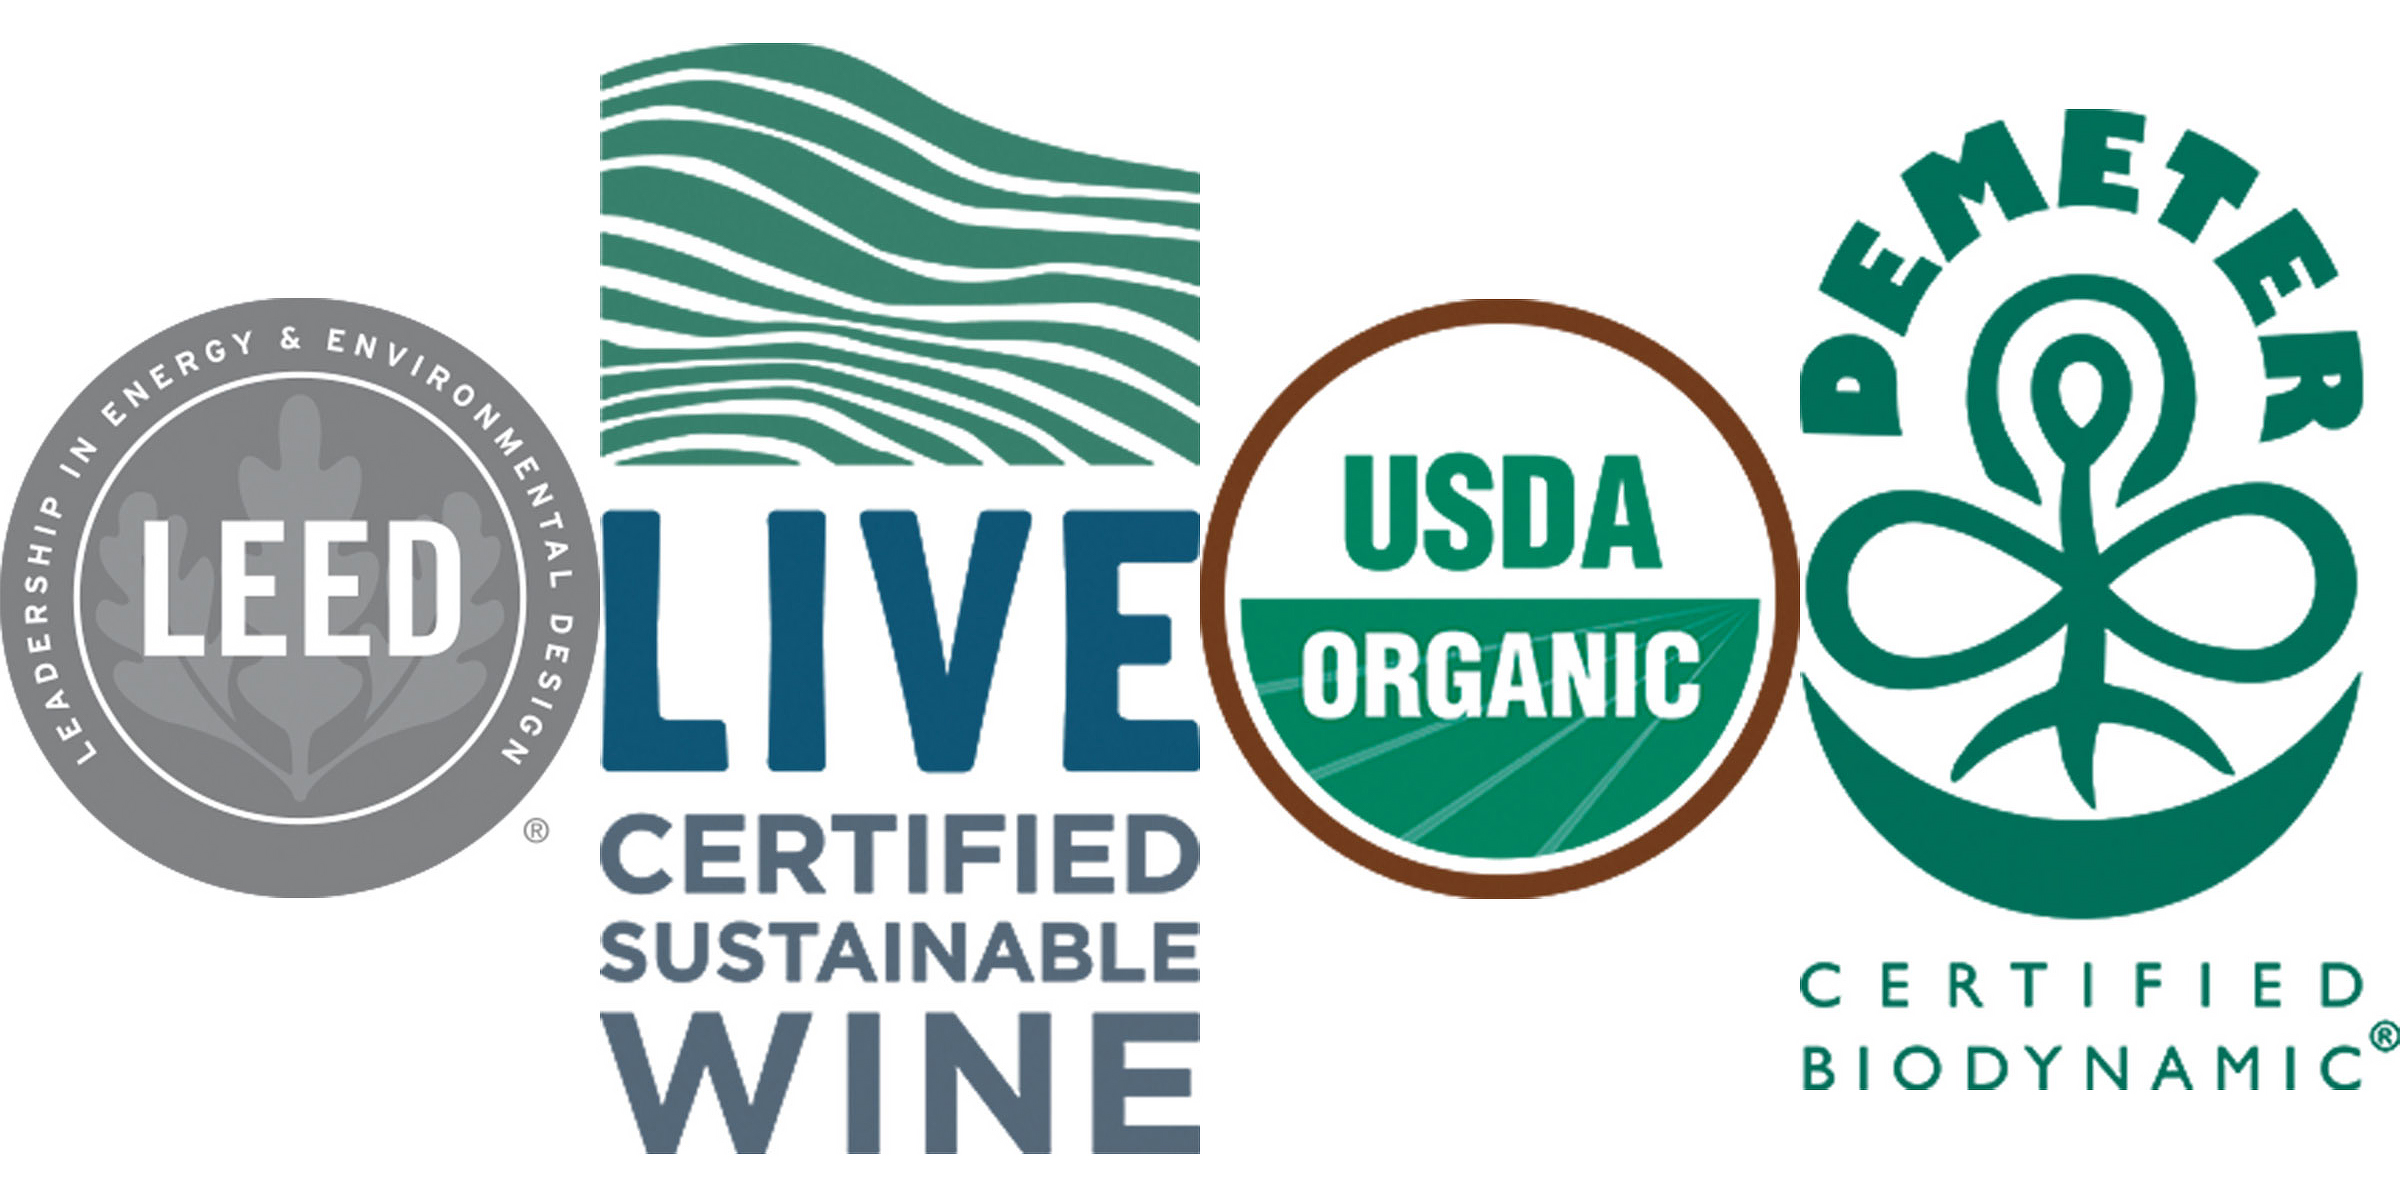 Logos for LEED, LIVE, National Organic Program and Demeter biodynamic certifications